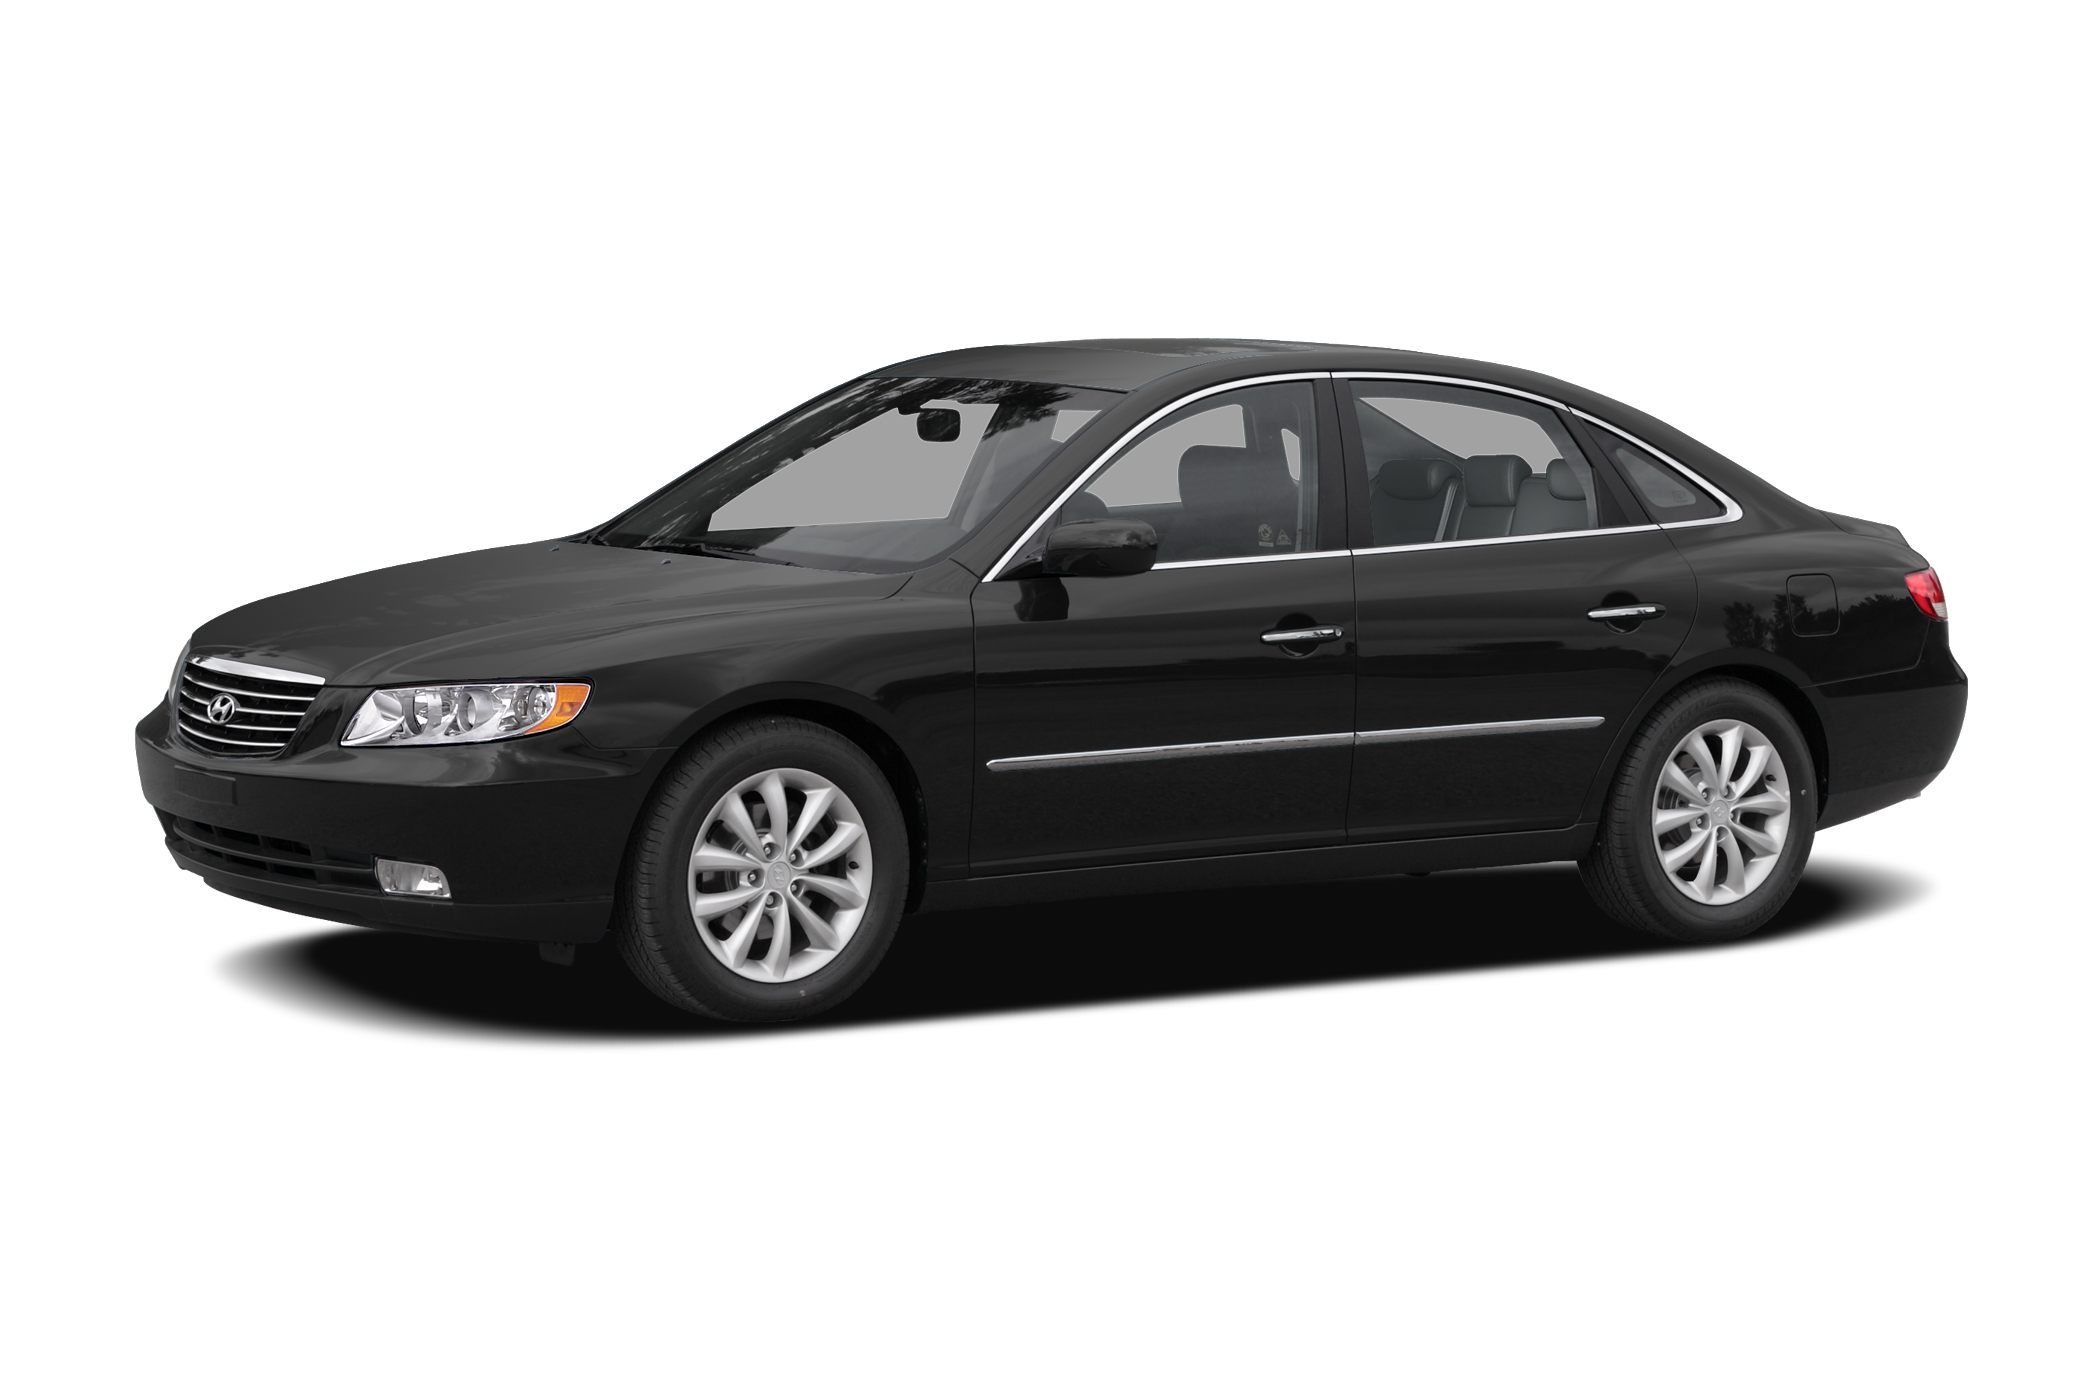 2008 Hyundai Azera Limited Sedan for sale in Wellington for $10,495 with 108,292 miles.